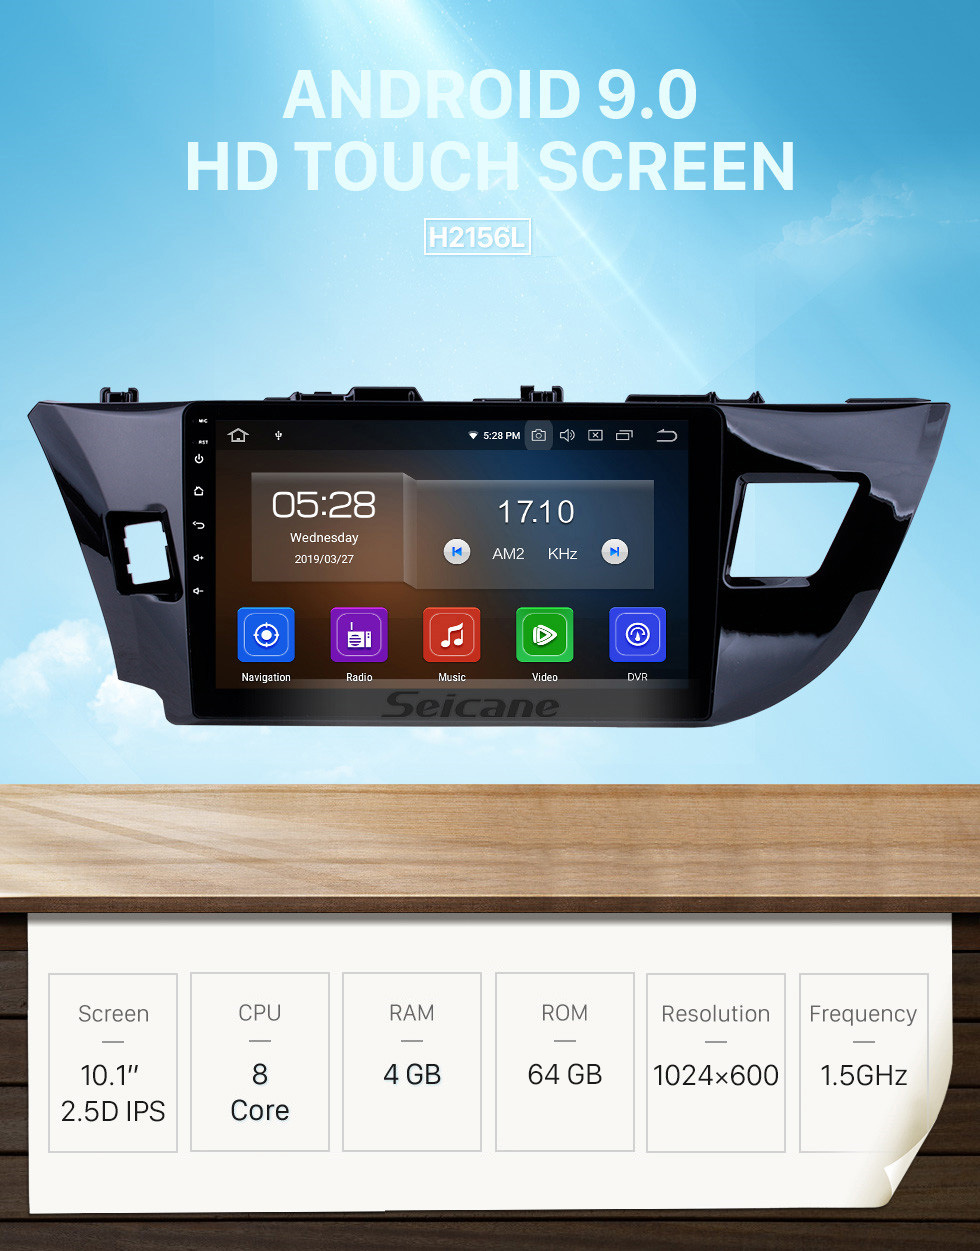 Seicane OEM 10.1 inch Android 9.0 HD Touchscreen Bluetooth Radio for 2014 Toyota Levin with GPS Navigation USB FM auto stereo Wifi AUX support DVR TPMS Backup Camera OBD2 SWC